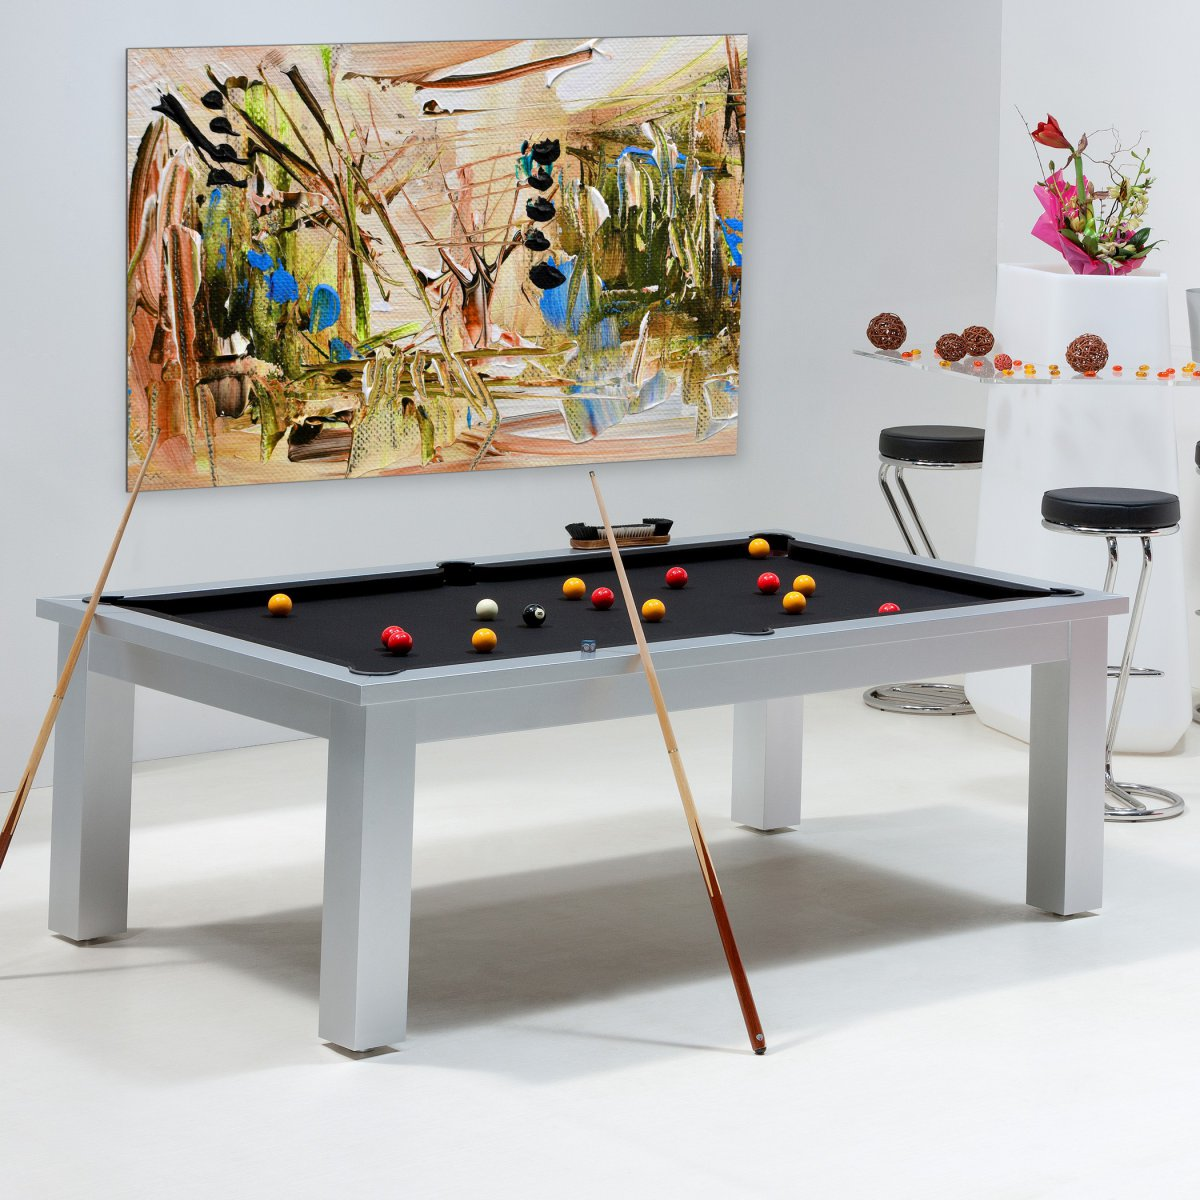 billard en table memphis with faire son billard soi meme. Black Bedroom Furniture Sets. Home Design Ideas